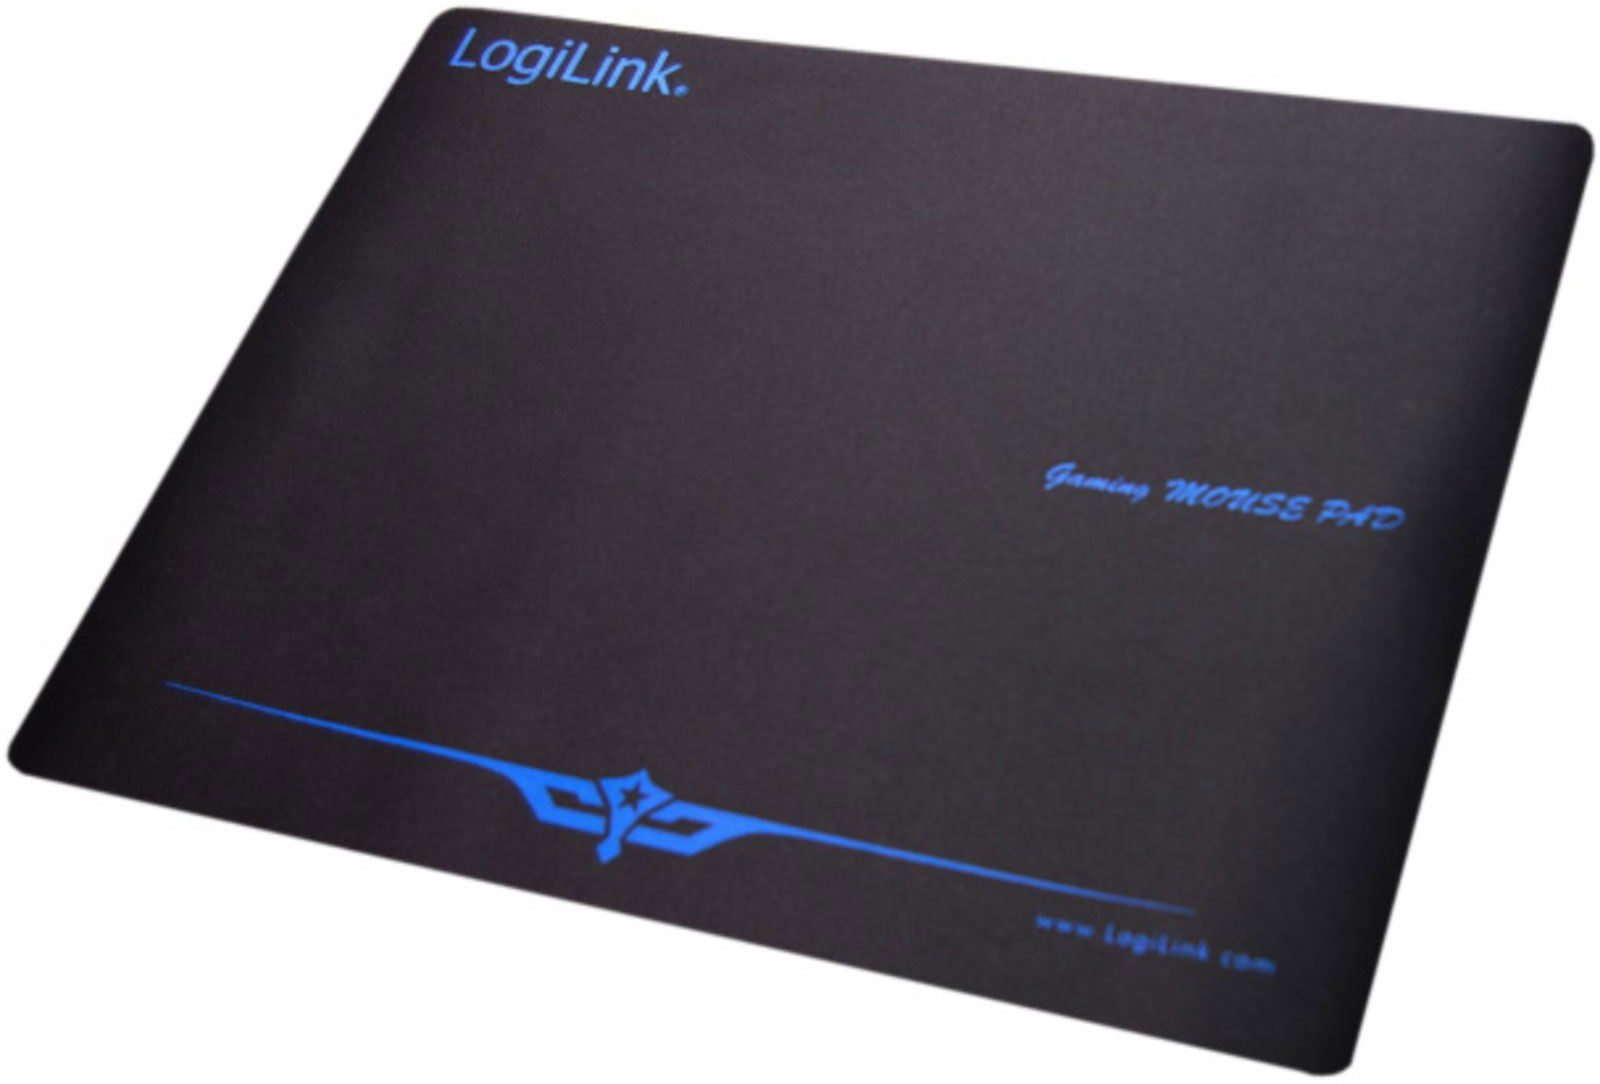 logilink mauspad xxl f r gaming und grafikdesign mousepad mouse maus pad id0017. Black Bedroom Furniture Sets. Home Design Ideas